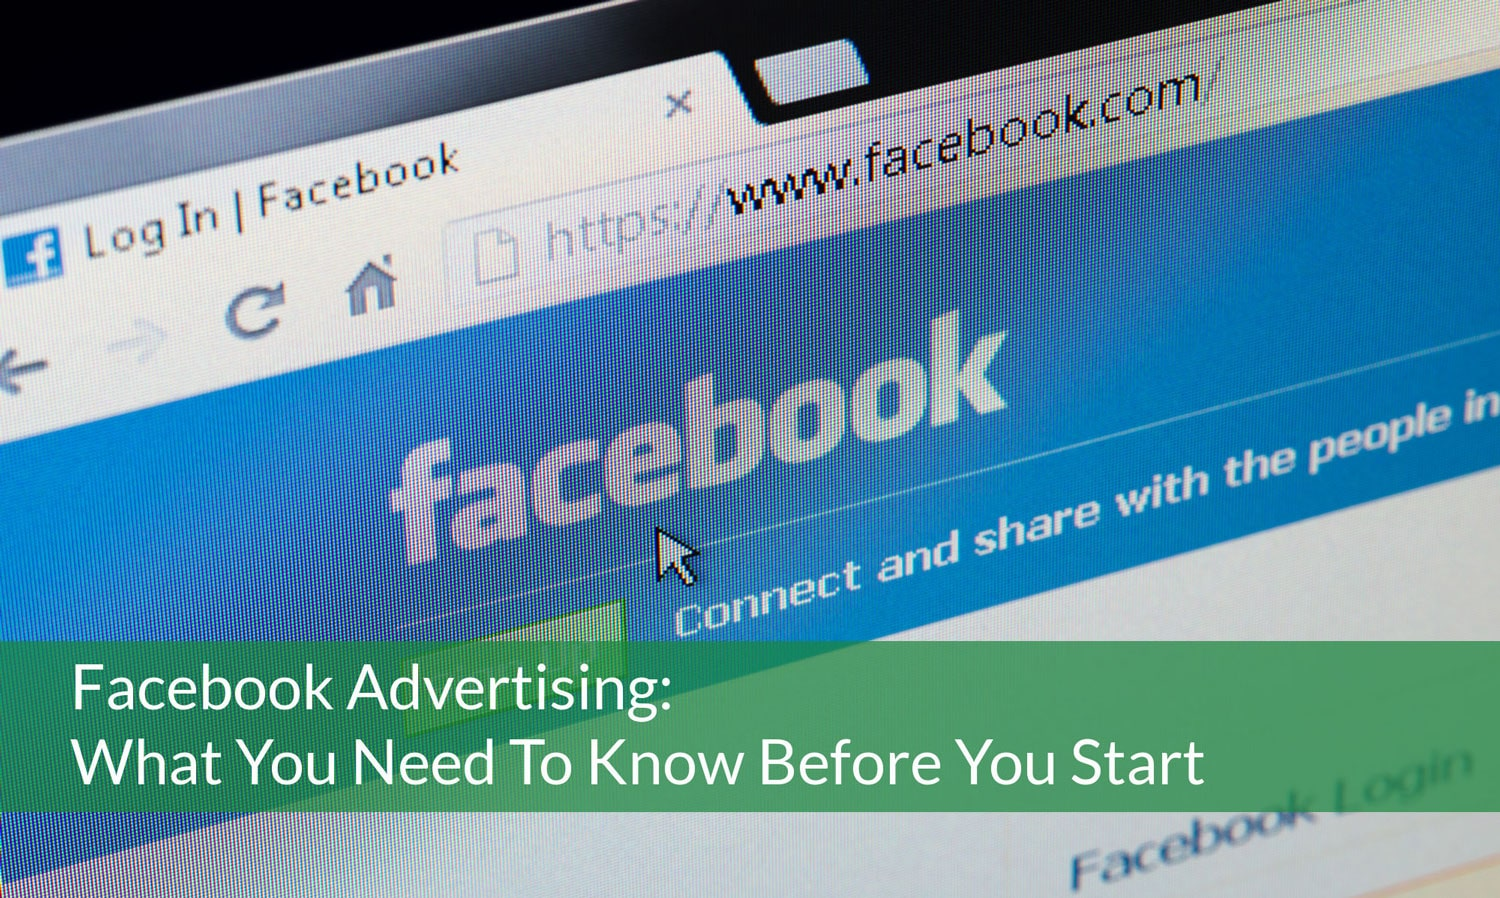 Facebook Advertising: What You Need To Know Before You Start